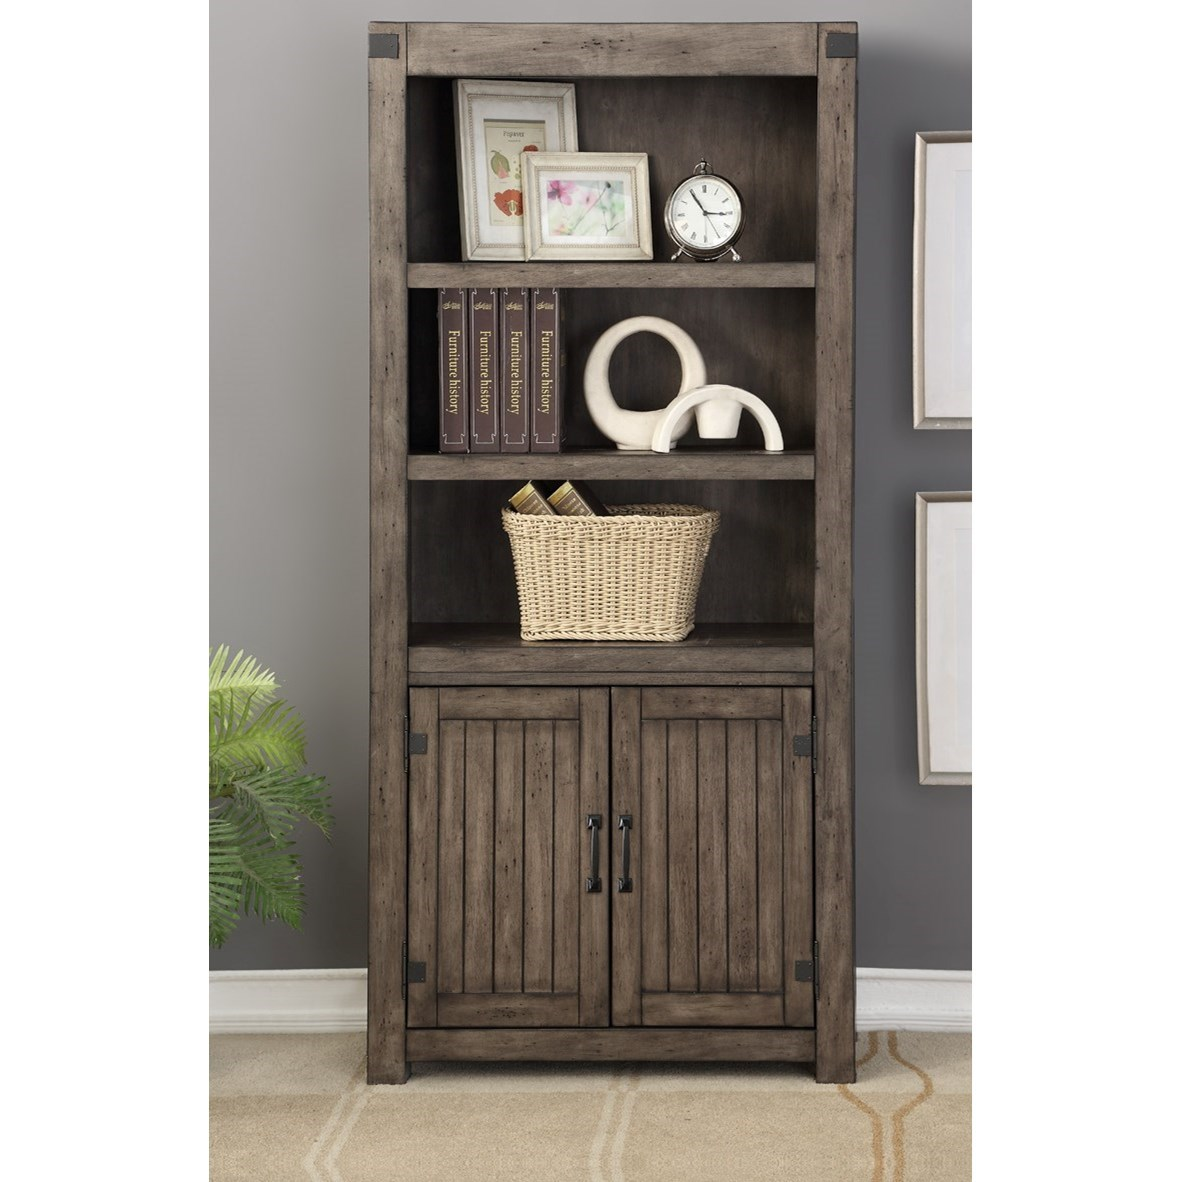 Storehouse 2 door bookcase